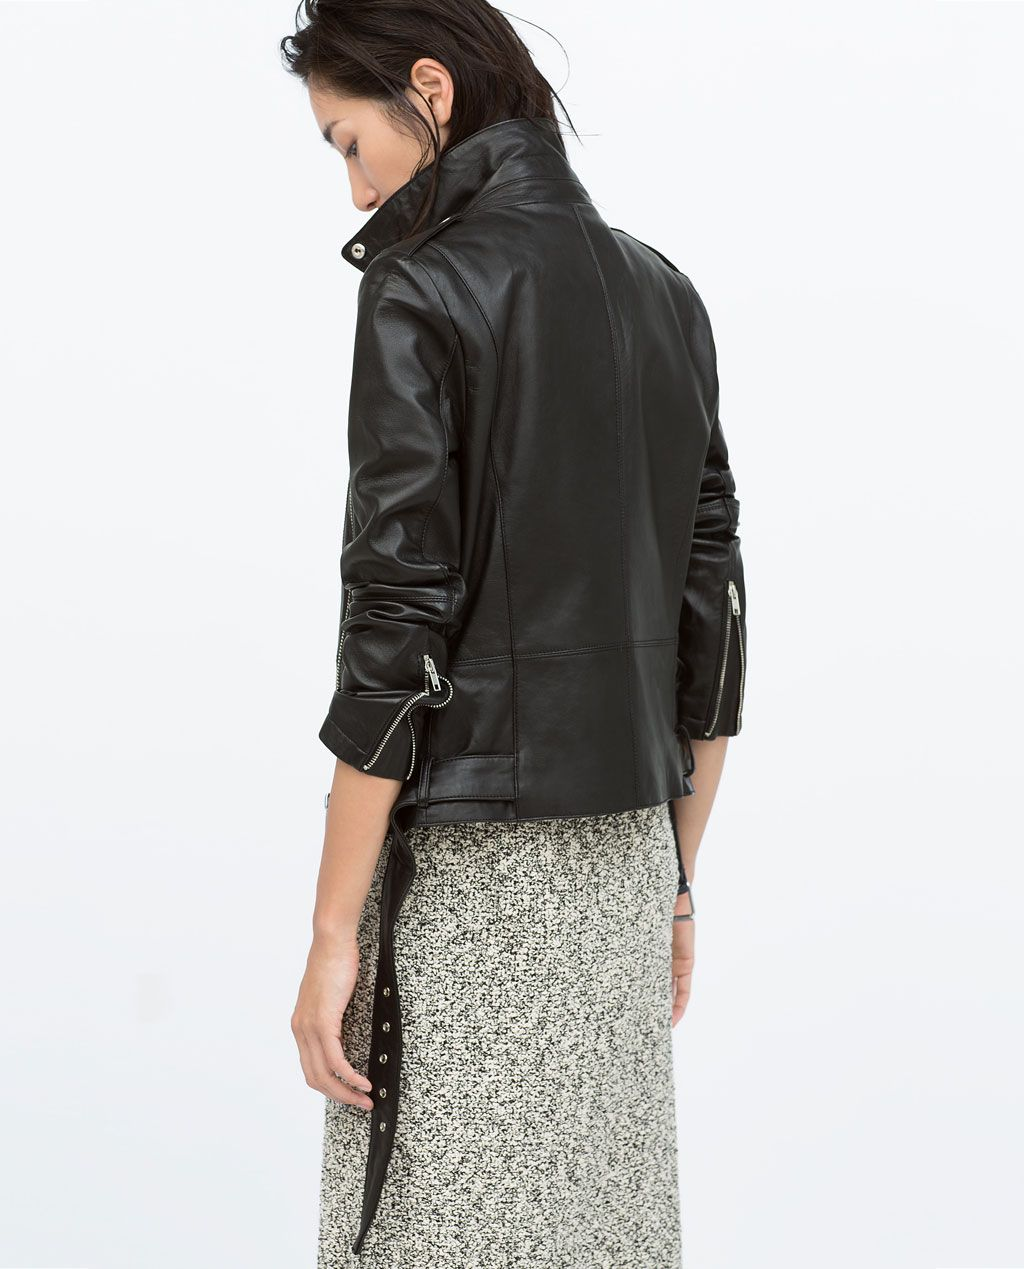 ZARA WOMAN ZIPPED LEATHER BIKER JACKET (With images